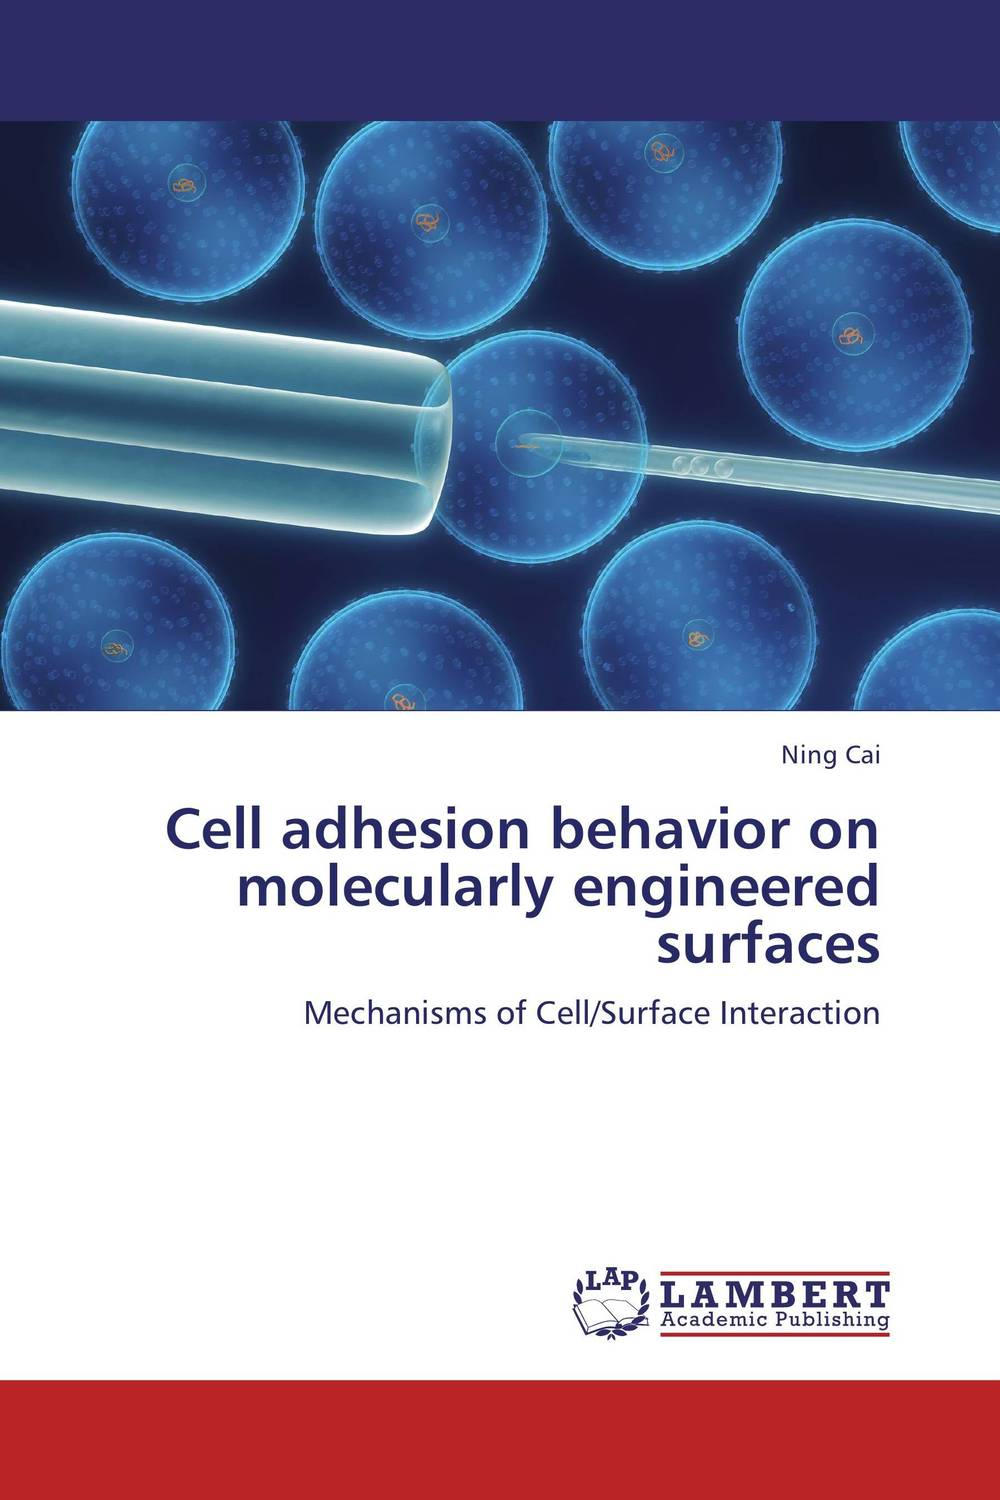 Cell adhesion behavior on molecularly engineered surfaces cell diagnostics images biophysical and biochemical processes in allelopathy